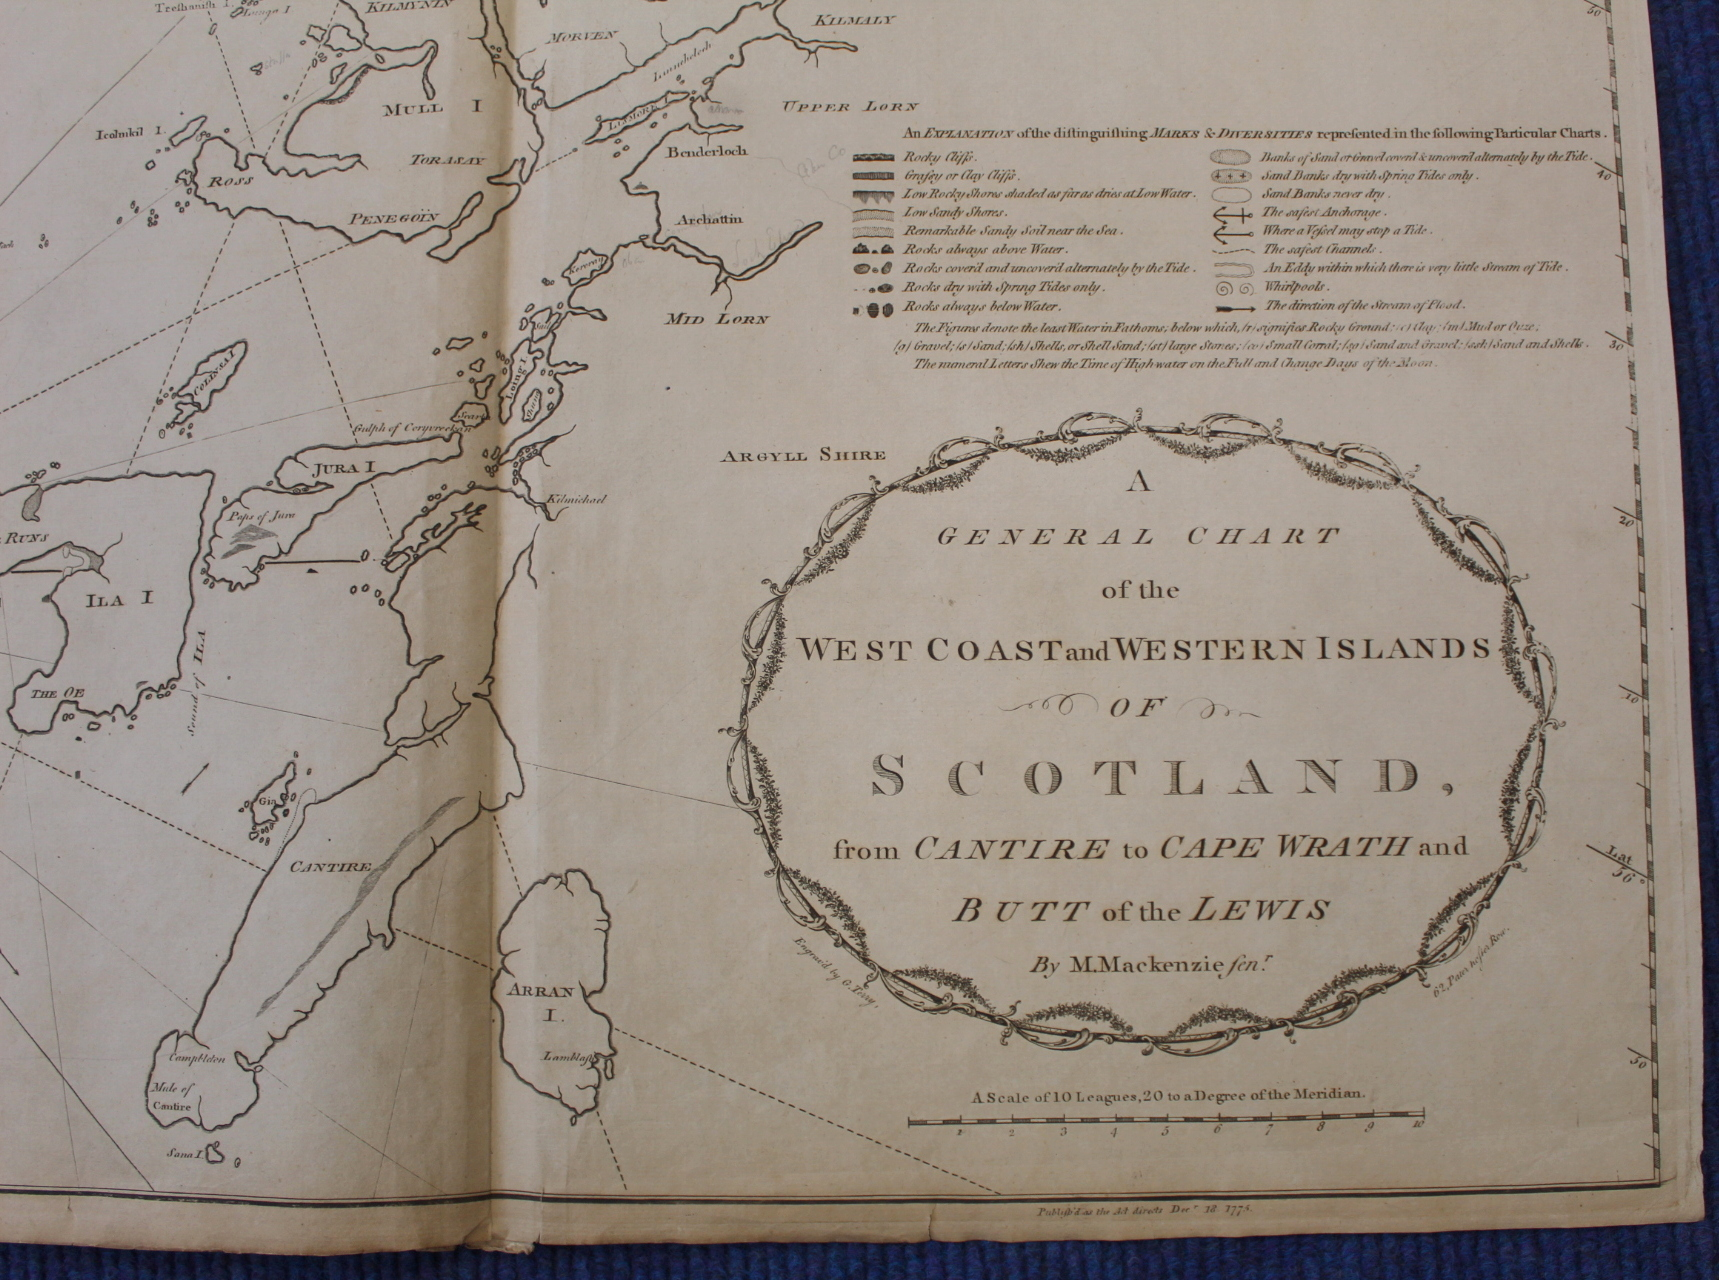 MACKENZIE MURDOCH (SNR.).A General Chart of the West Coast & Western Islands of Scotland from - Image 21 of 66